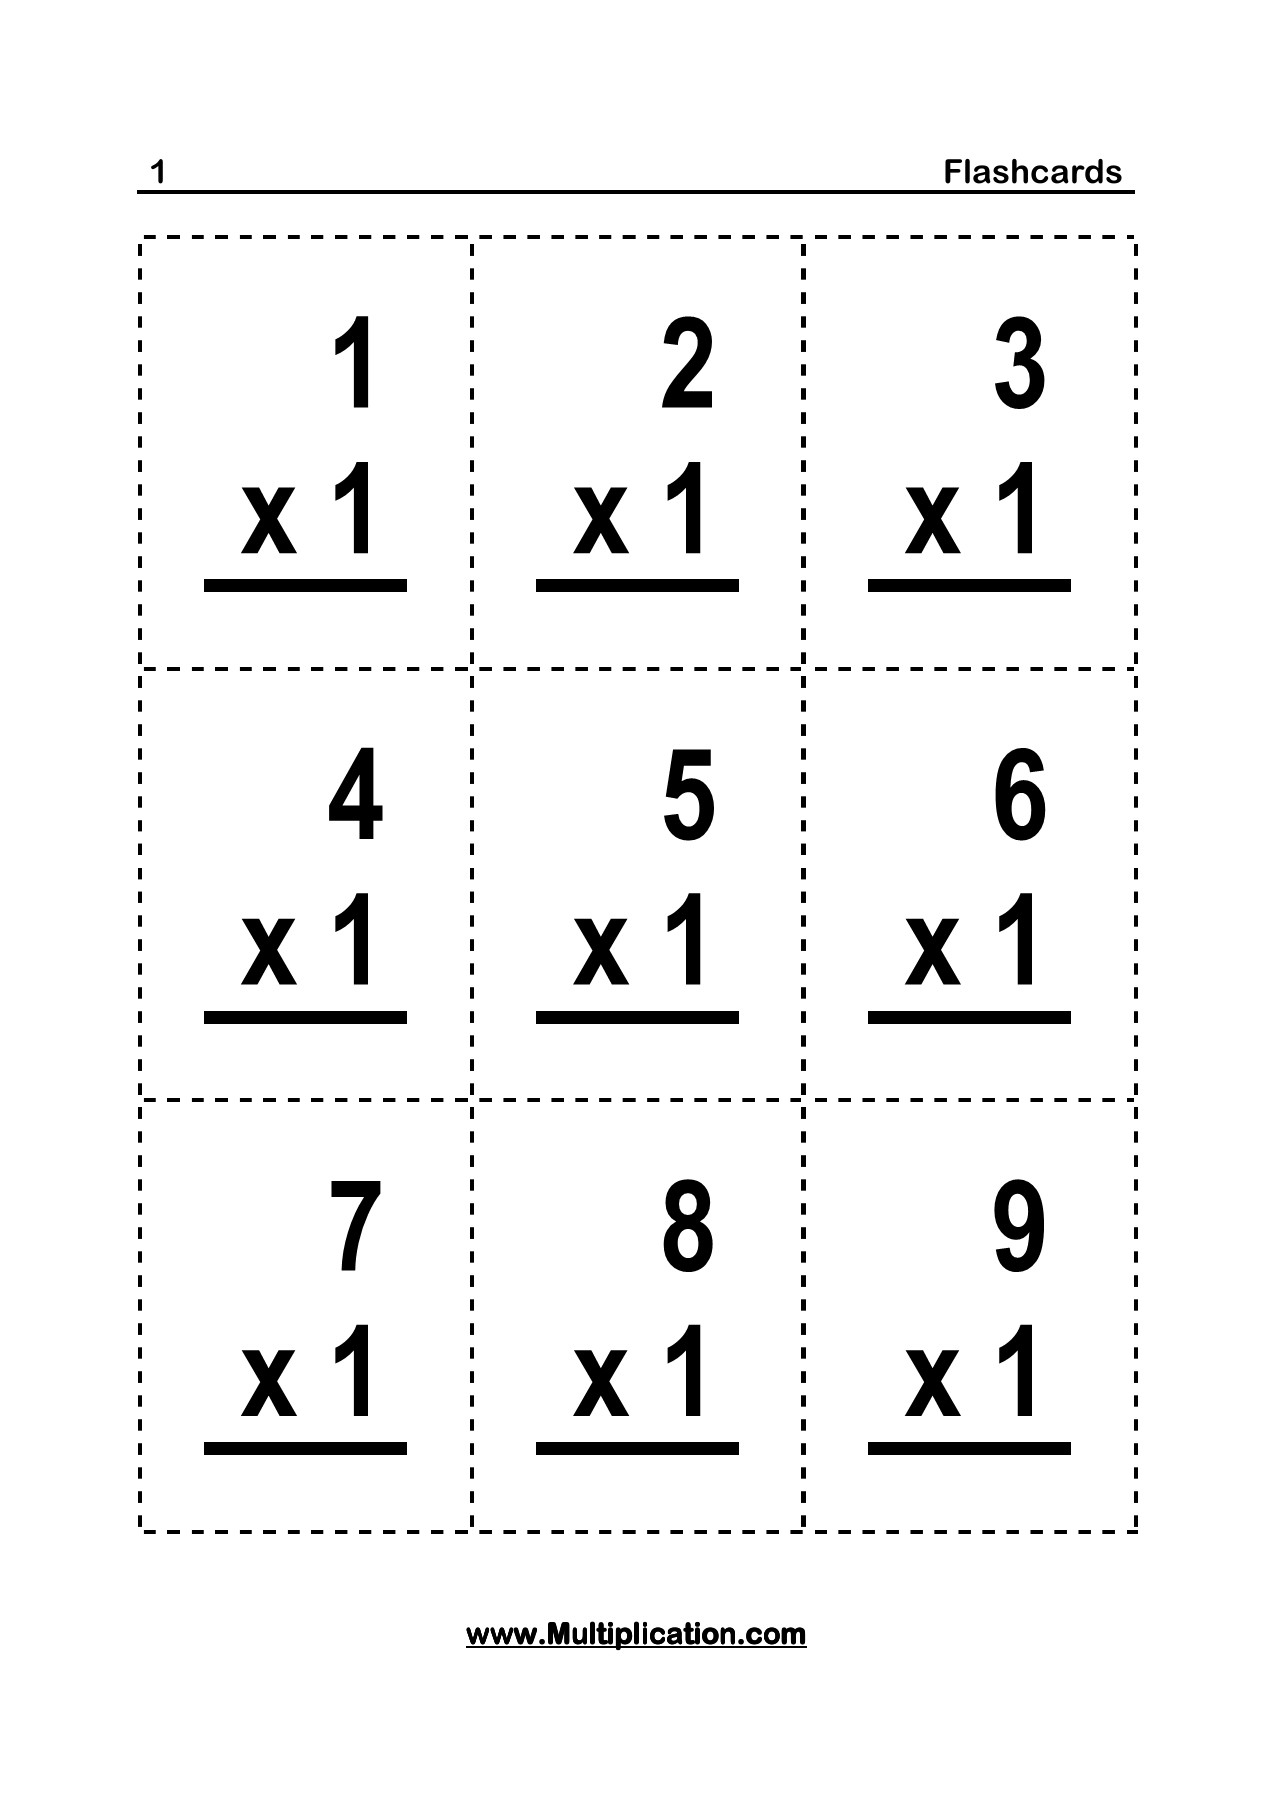 Flashcards - 0 - Multiplication Pages 1 - 26 - Text